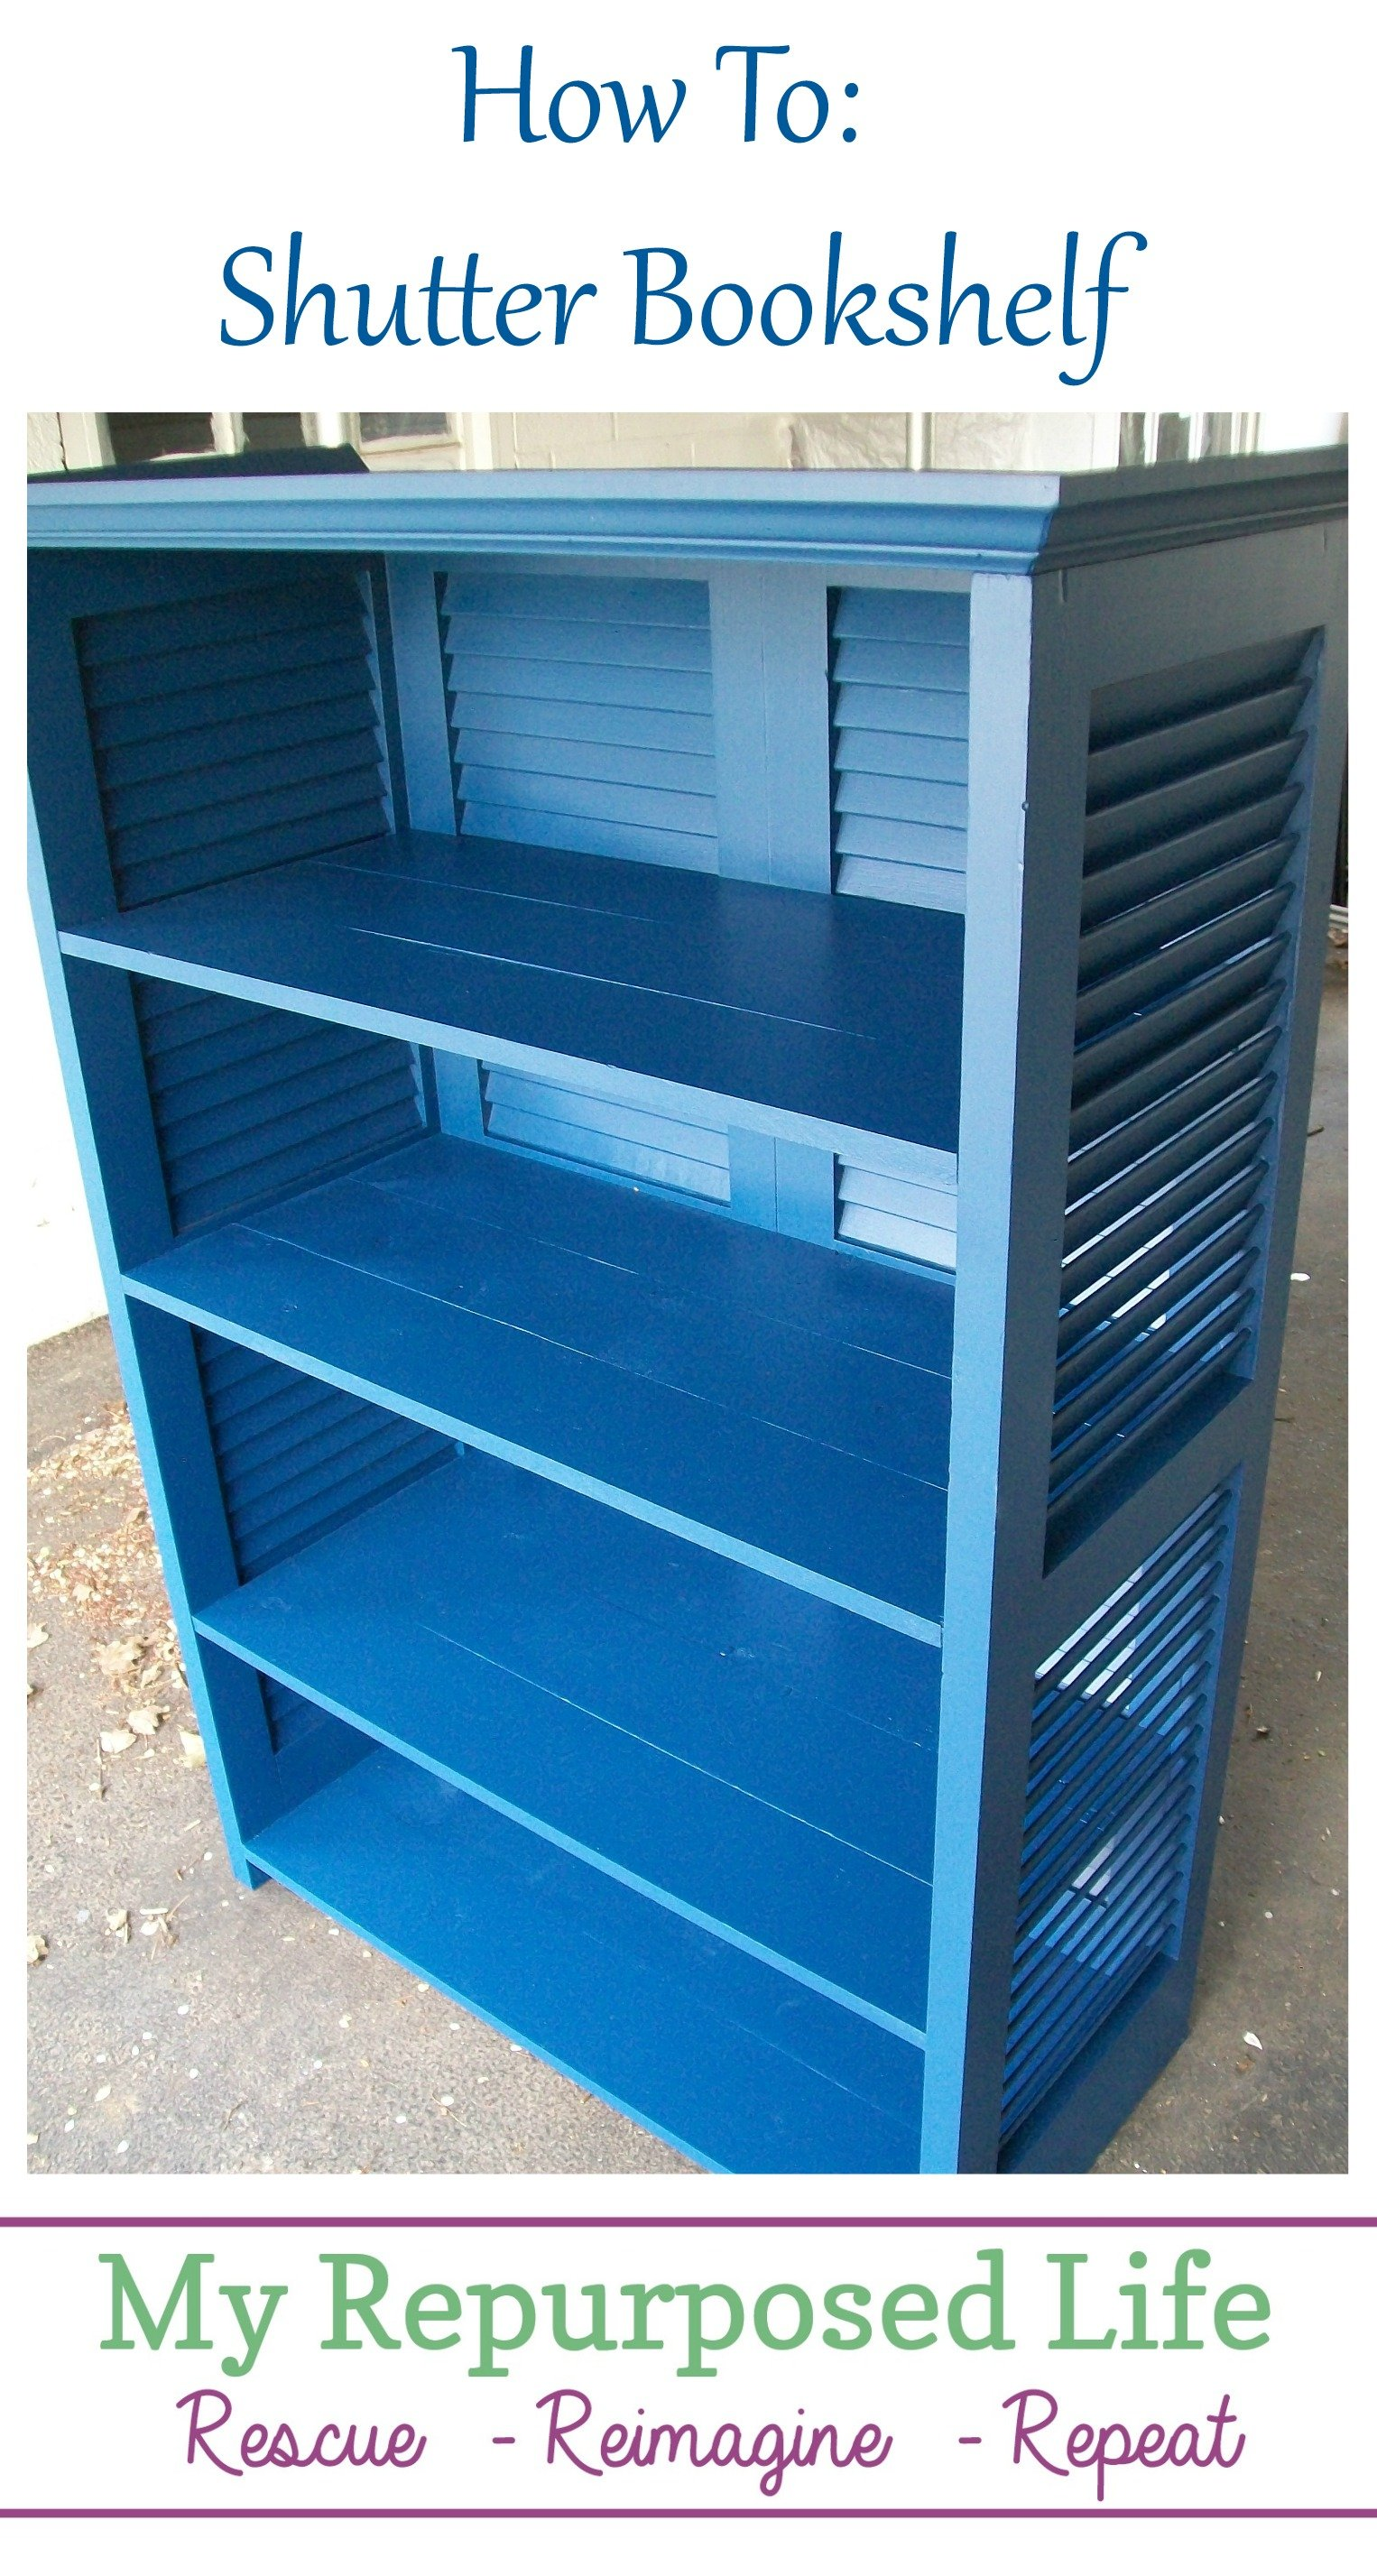 How to use four shutters to make a repurposed bookshelf. Step by step directions included to make your own project. Lots of tips and tidbits to Do It Yourself! #MyRepurposedLife #repurposed #shutter #bookshelf #upcycle #diy #project via @repurposedlife